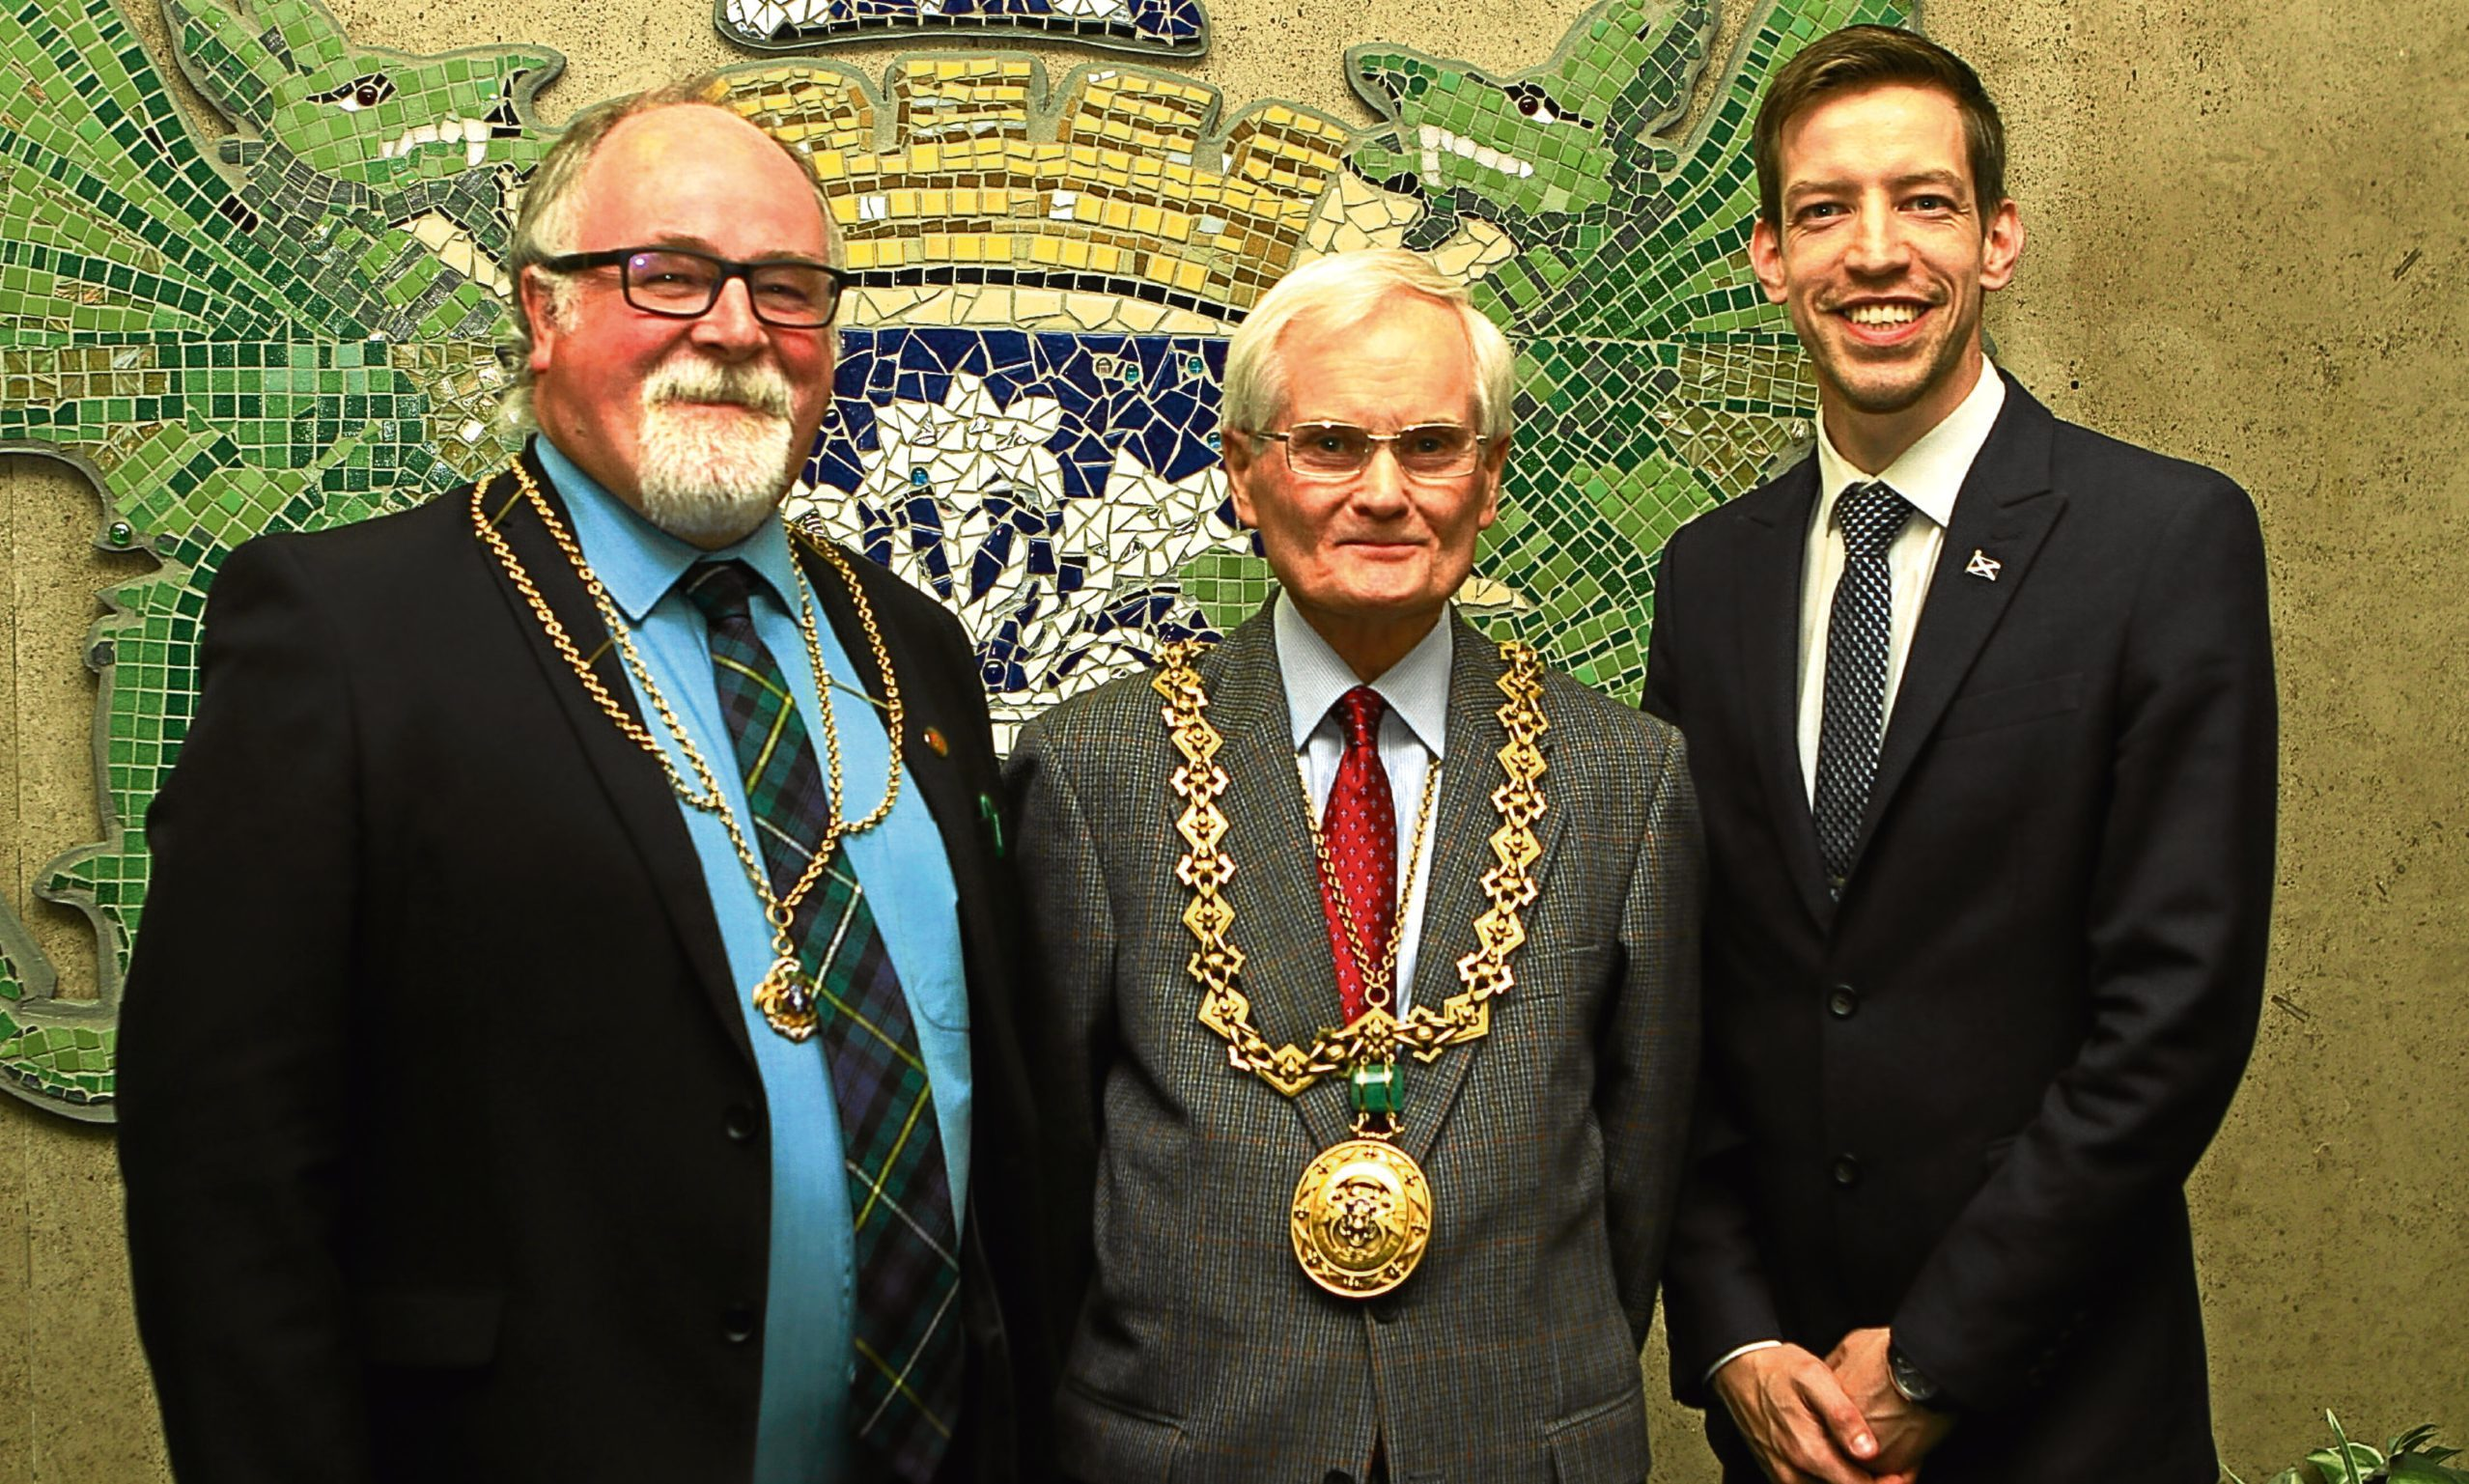 The new lord provost of Dundee Ian Borthwick, centre, with depute lord provost Bill Campbell, left, and administration leader John Alexander.